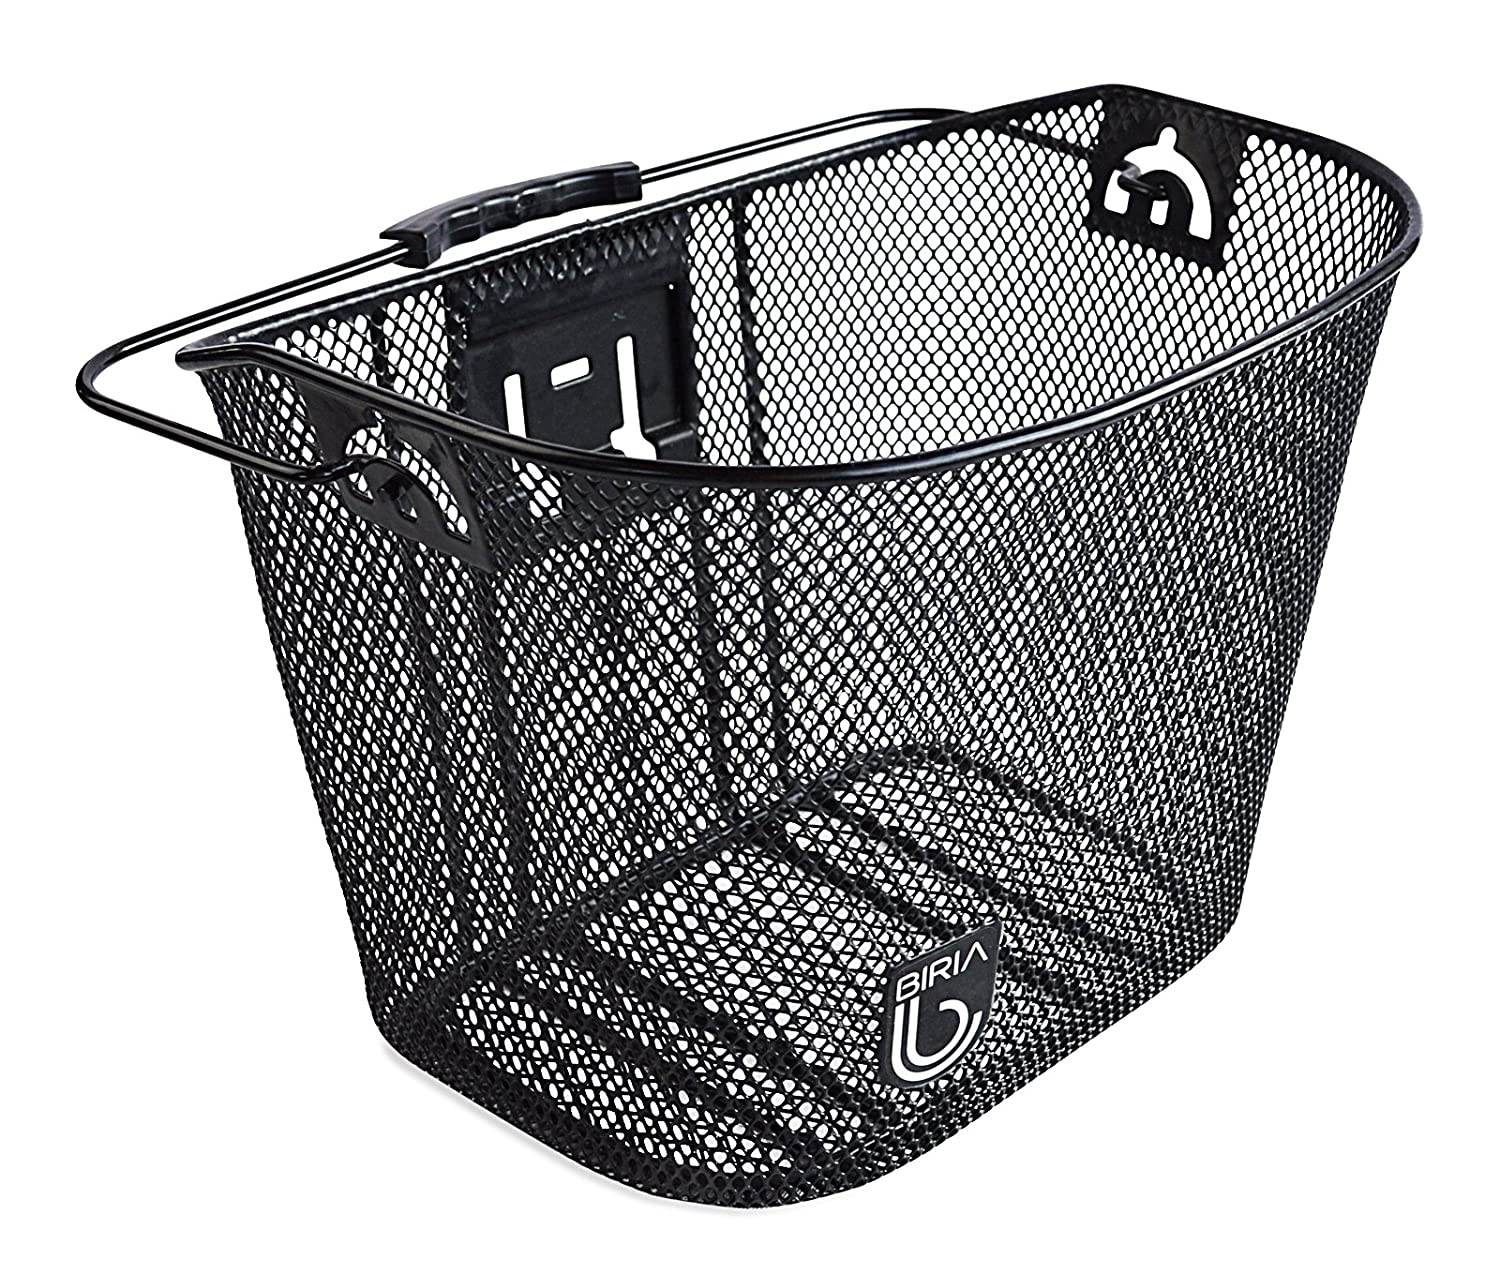 Amazon.com : Biria Bicycle Basket With Bracket Black   Front Quick Release  Basket, Removable, Wire Mesh Bicycle Basket